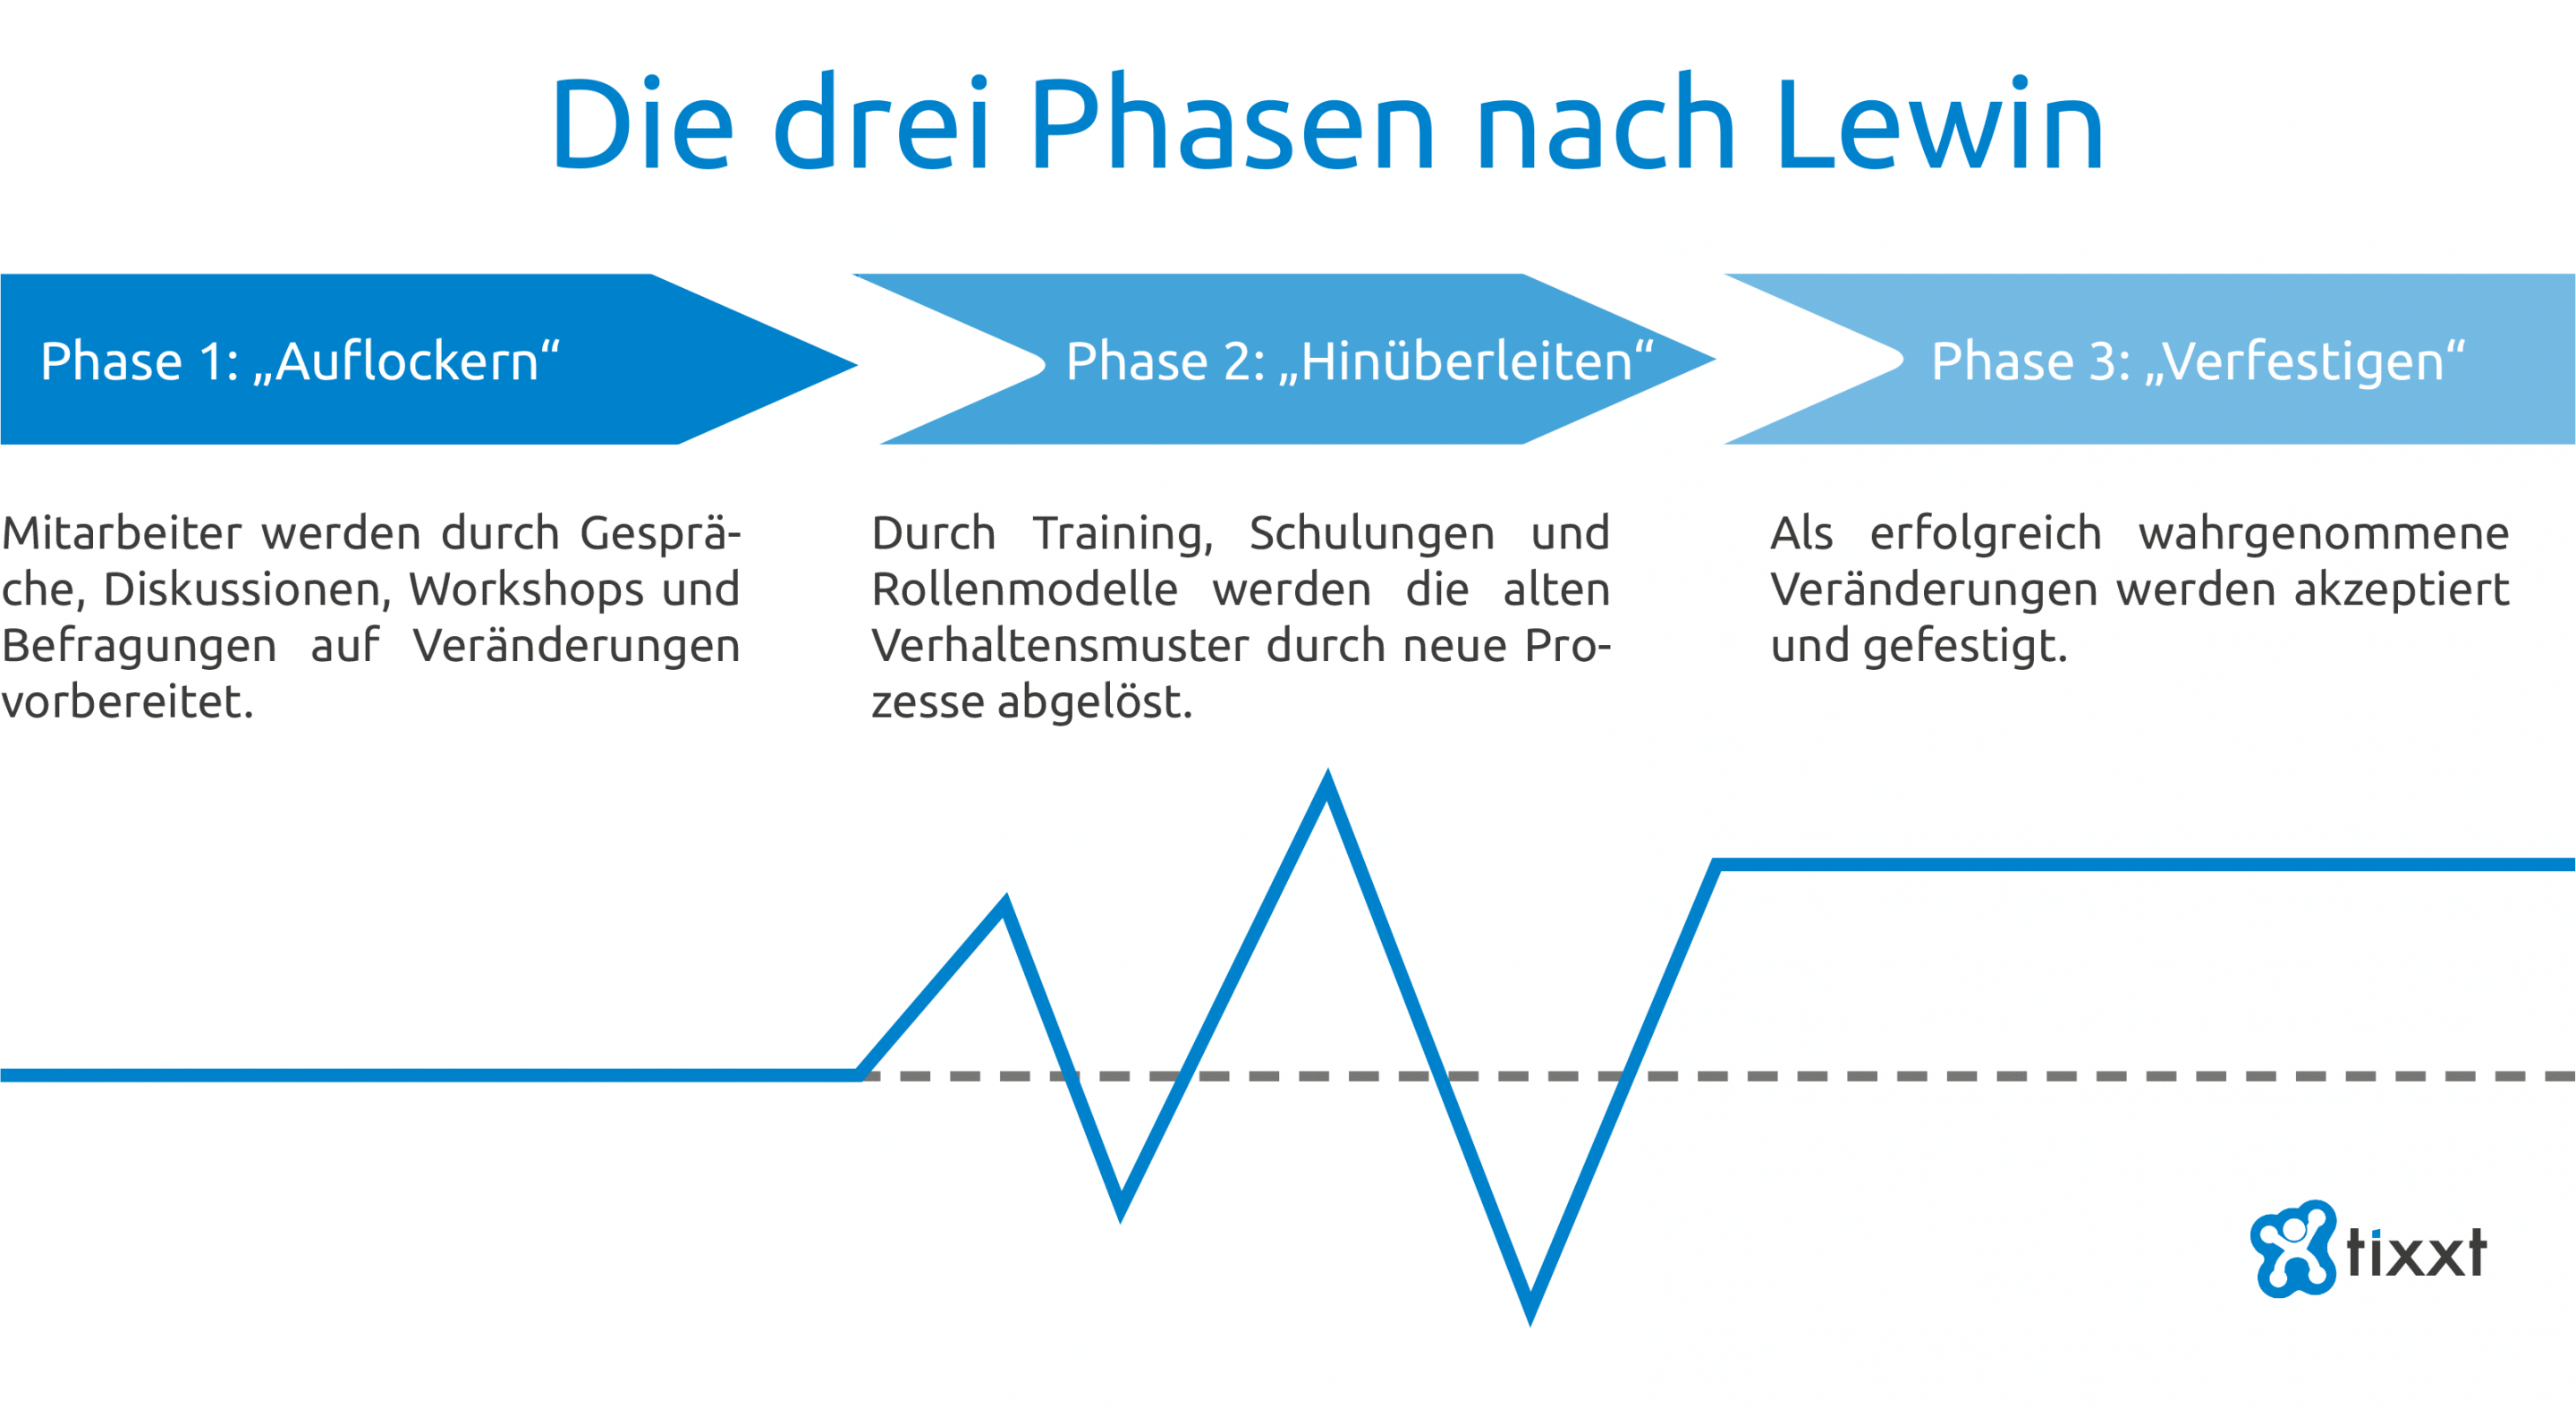 Die drei Phasen des Change Management